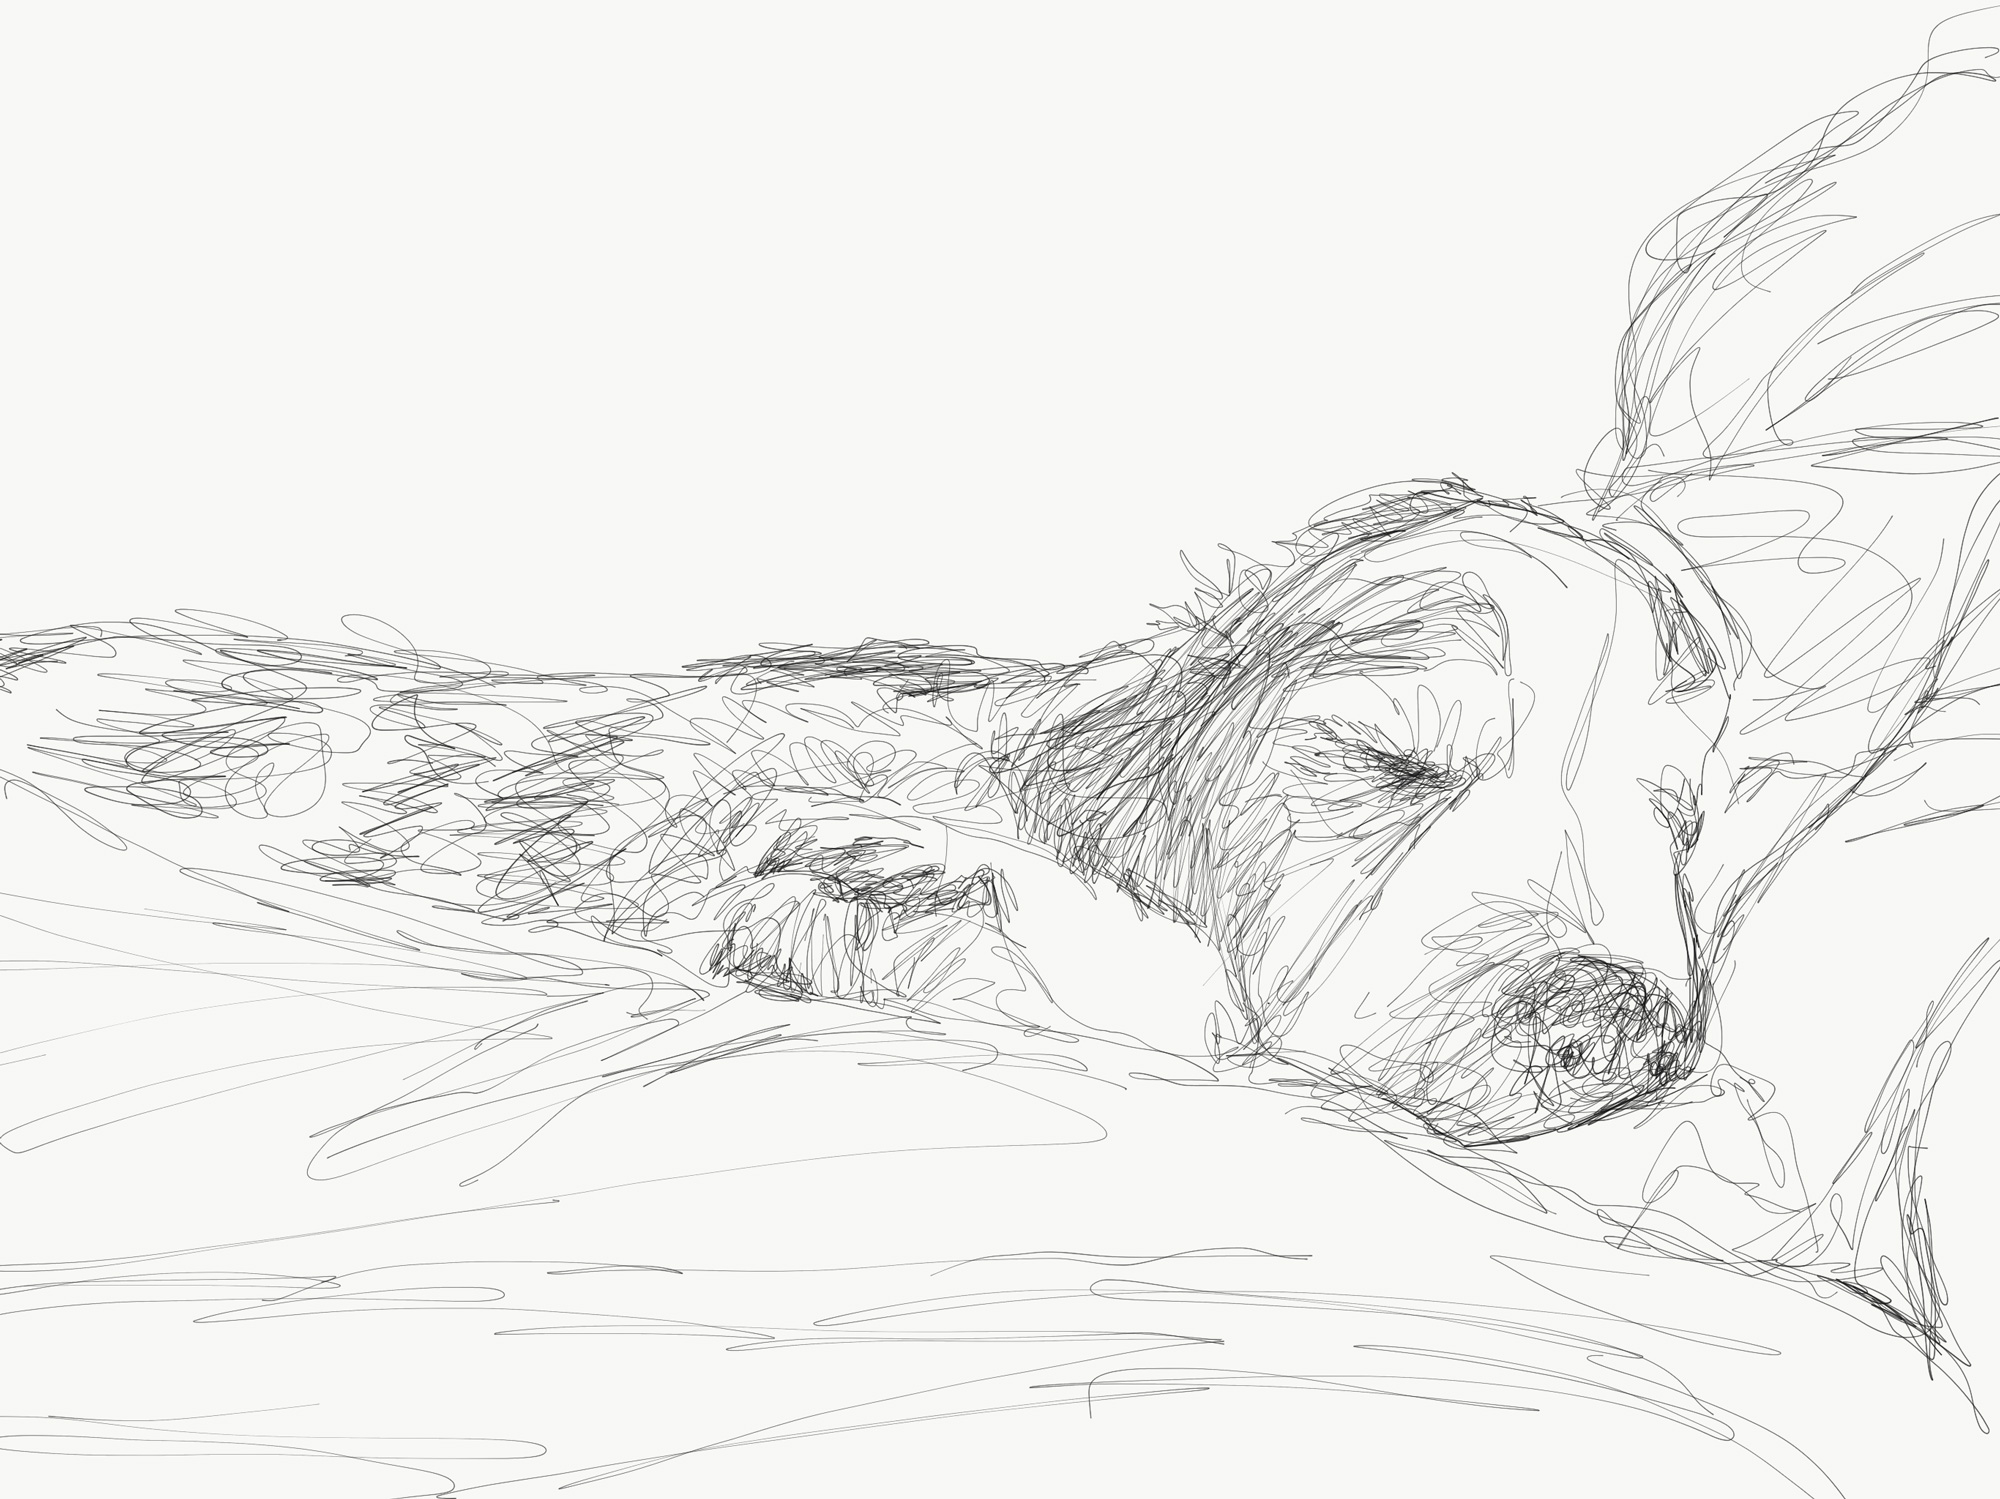 Milo No. 7 (sleeping dog)